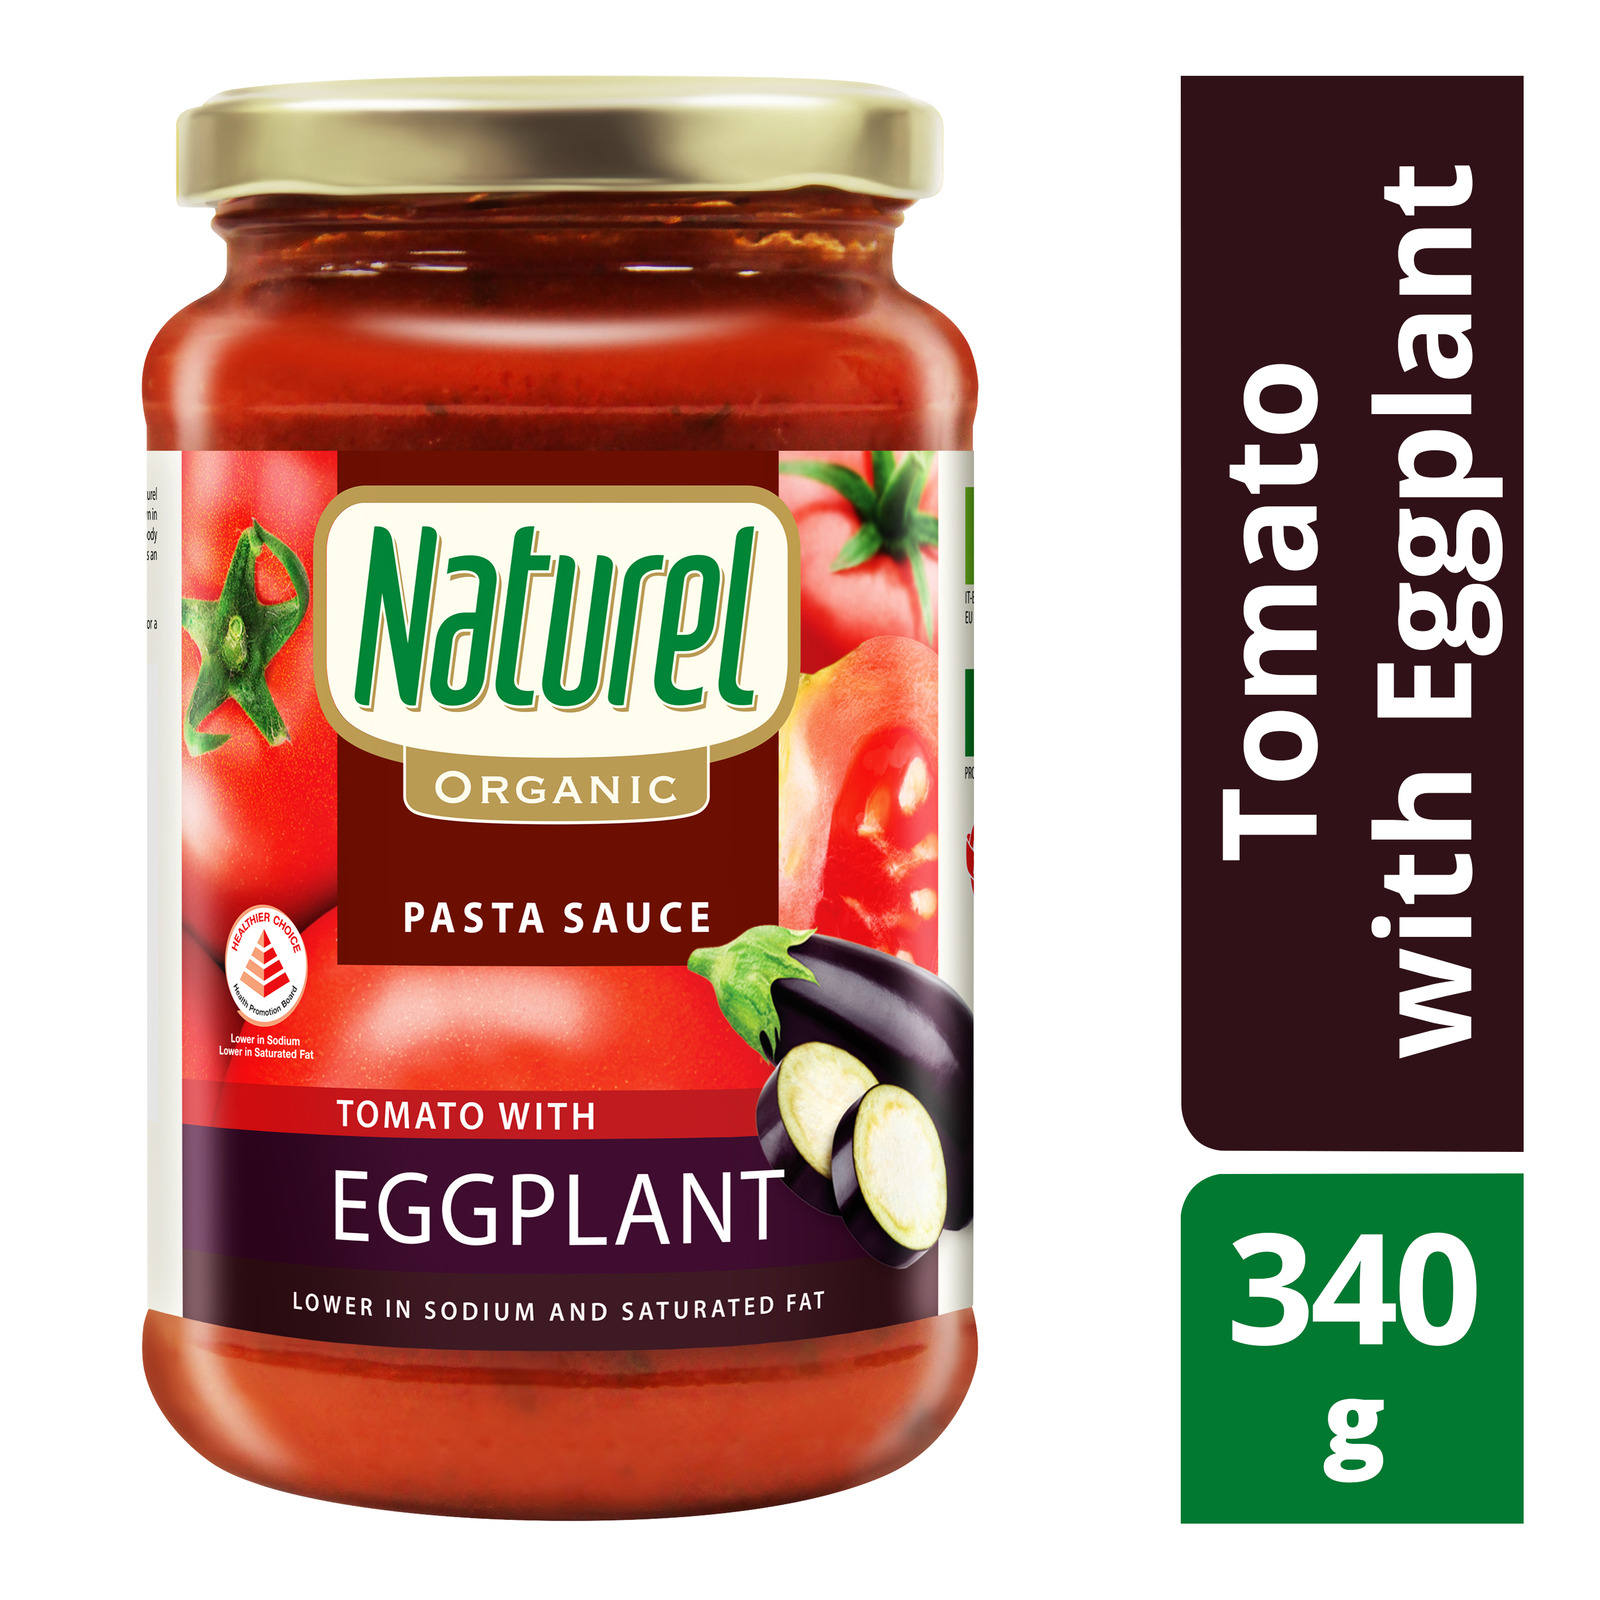 Naturel Organic Pasta Sauce - Tomato with Eggplant